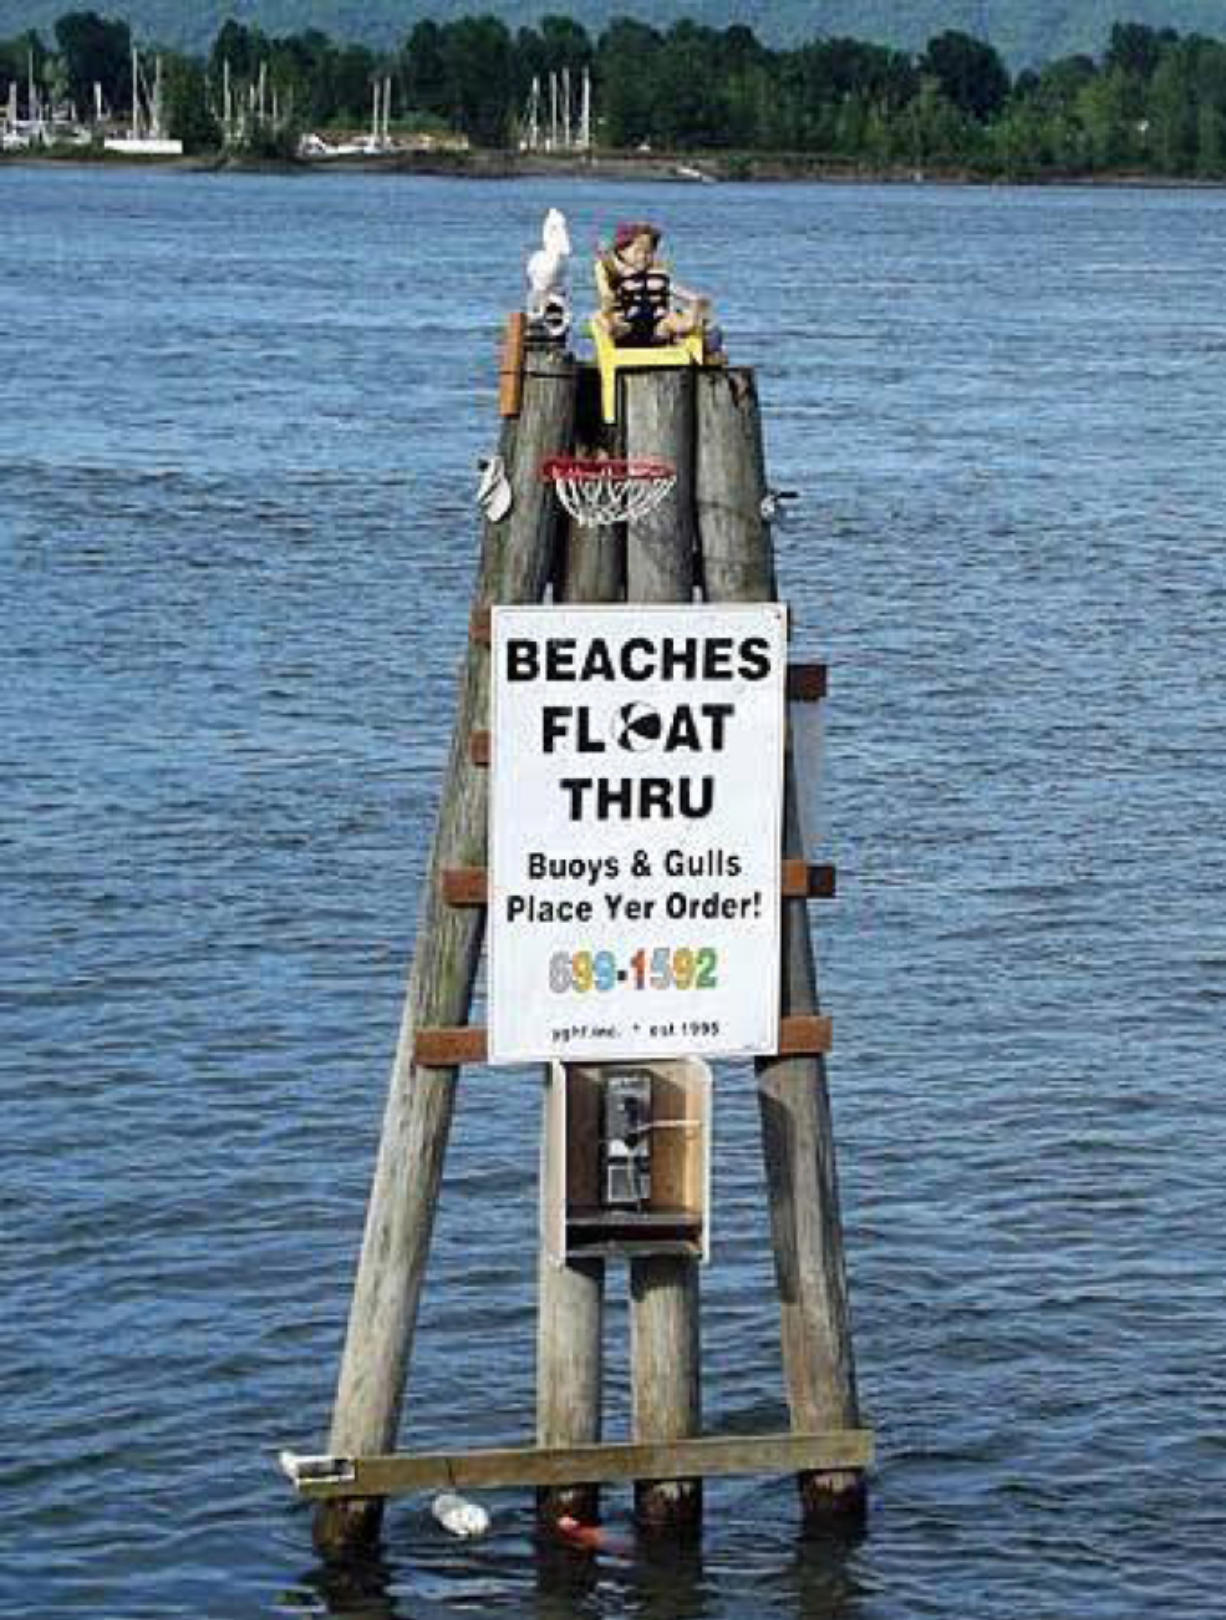 The sign for Beaches Restaurant and Lounge floated away sometime last Wednesday, its owner said. The restaurant is offering dinner for 20 to the person who retrieves it.